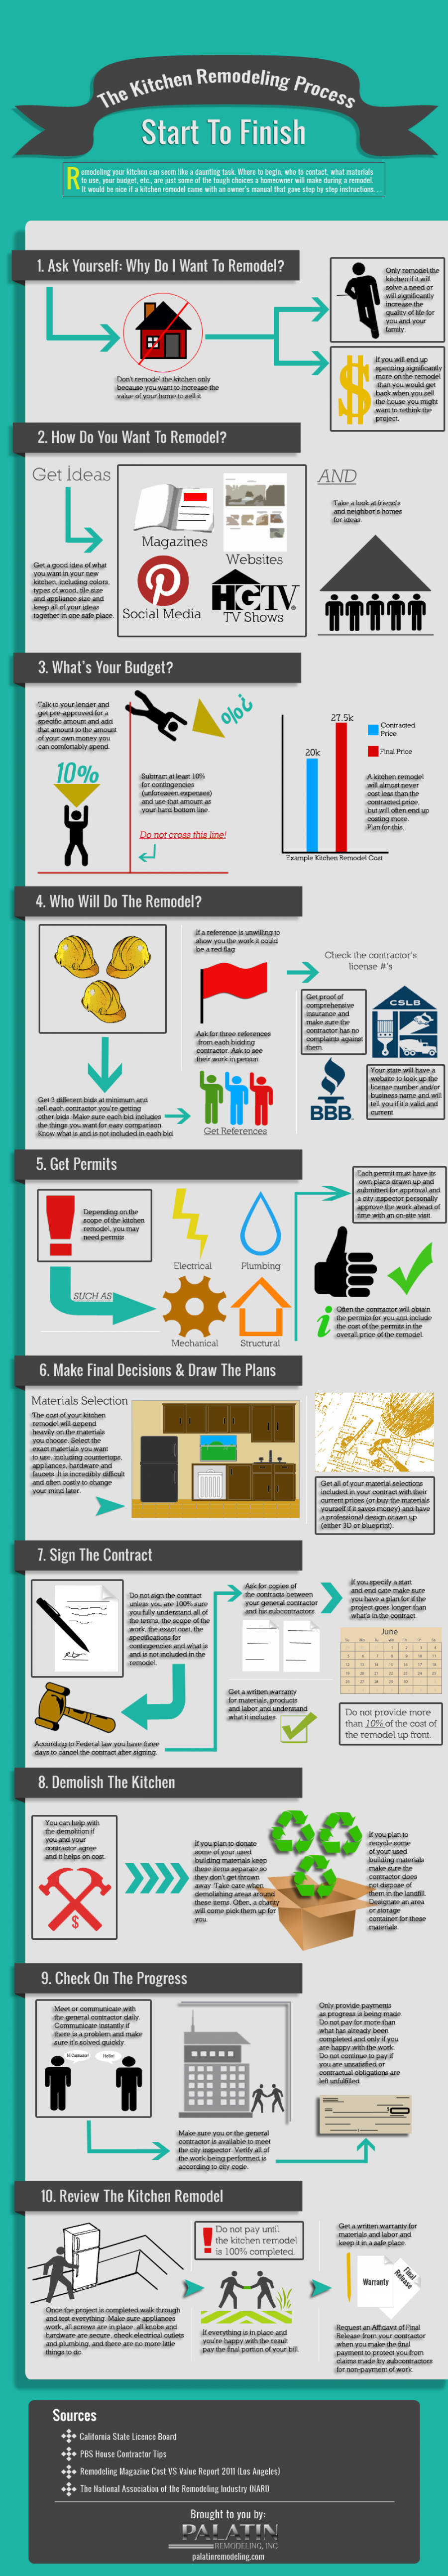 The Kitchen Remodeling Process: Start to Finish